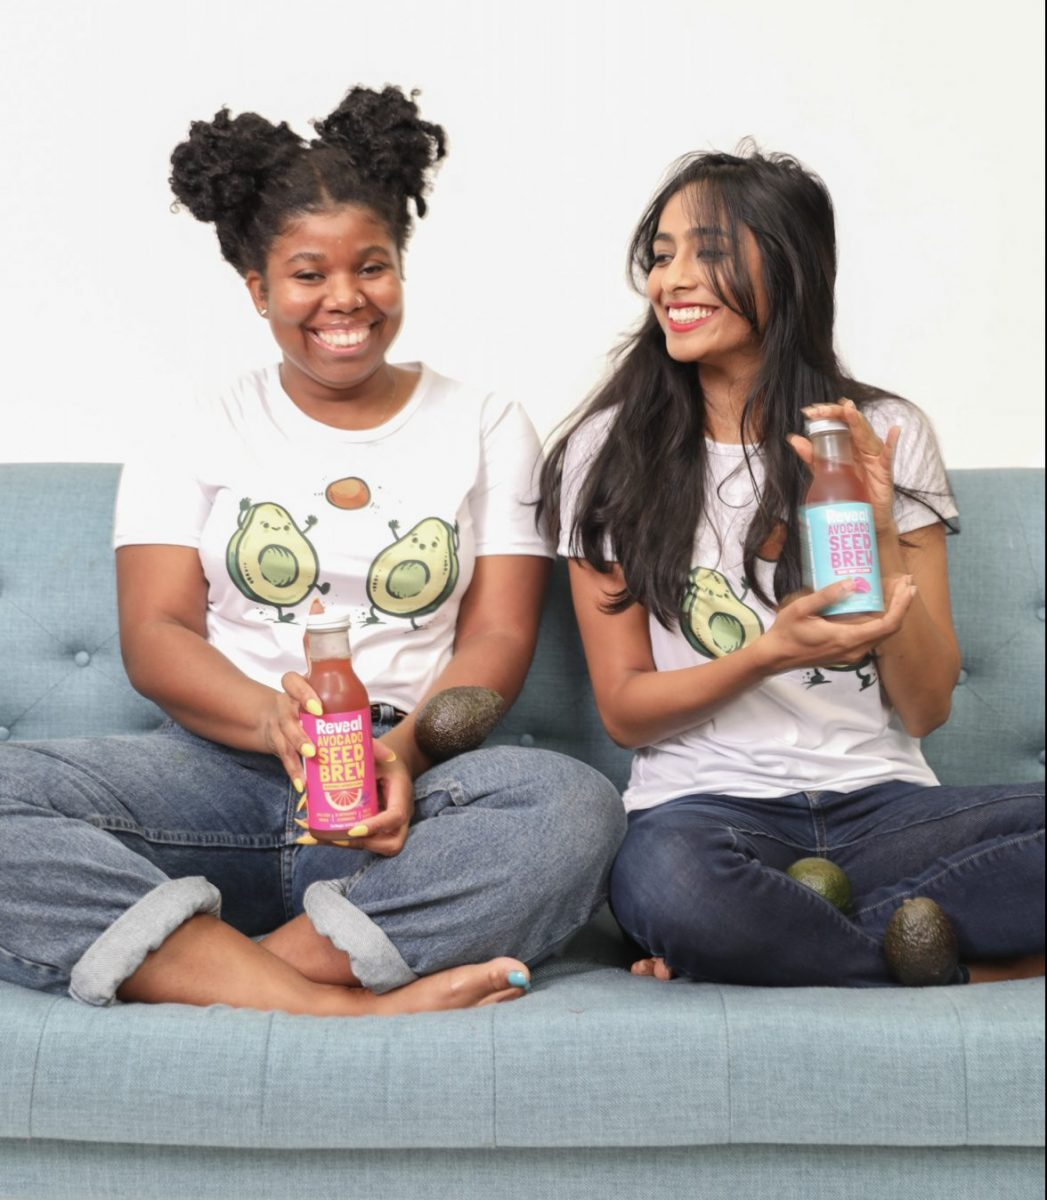 Co-founders Zuri Masud and Sheetal Bahirat of Hidden Gems Beverage Company